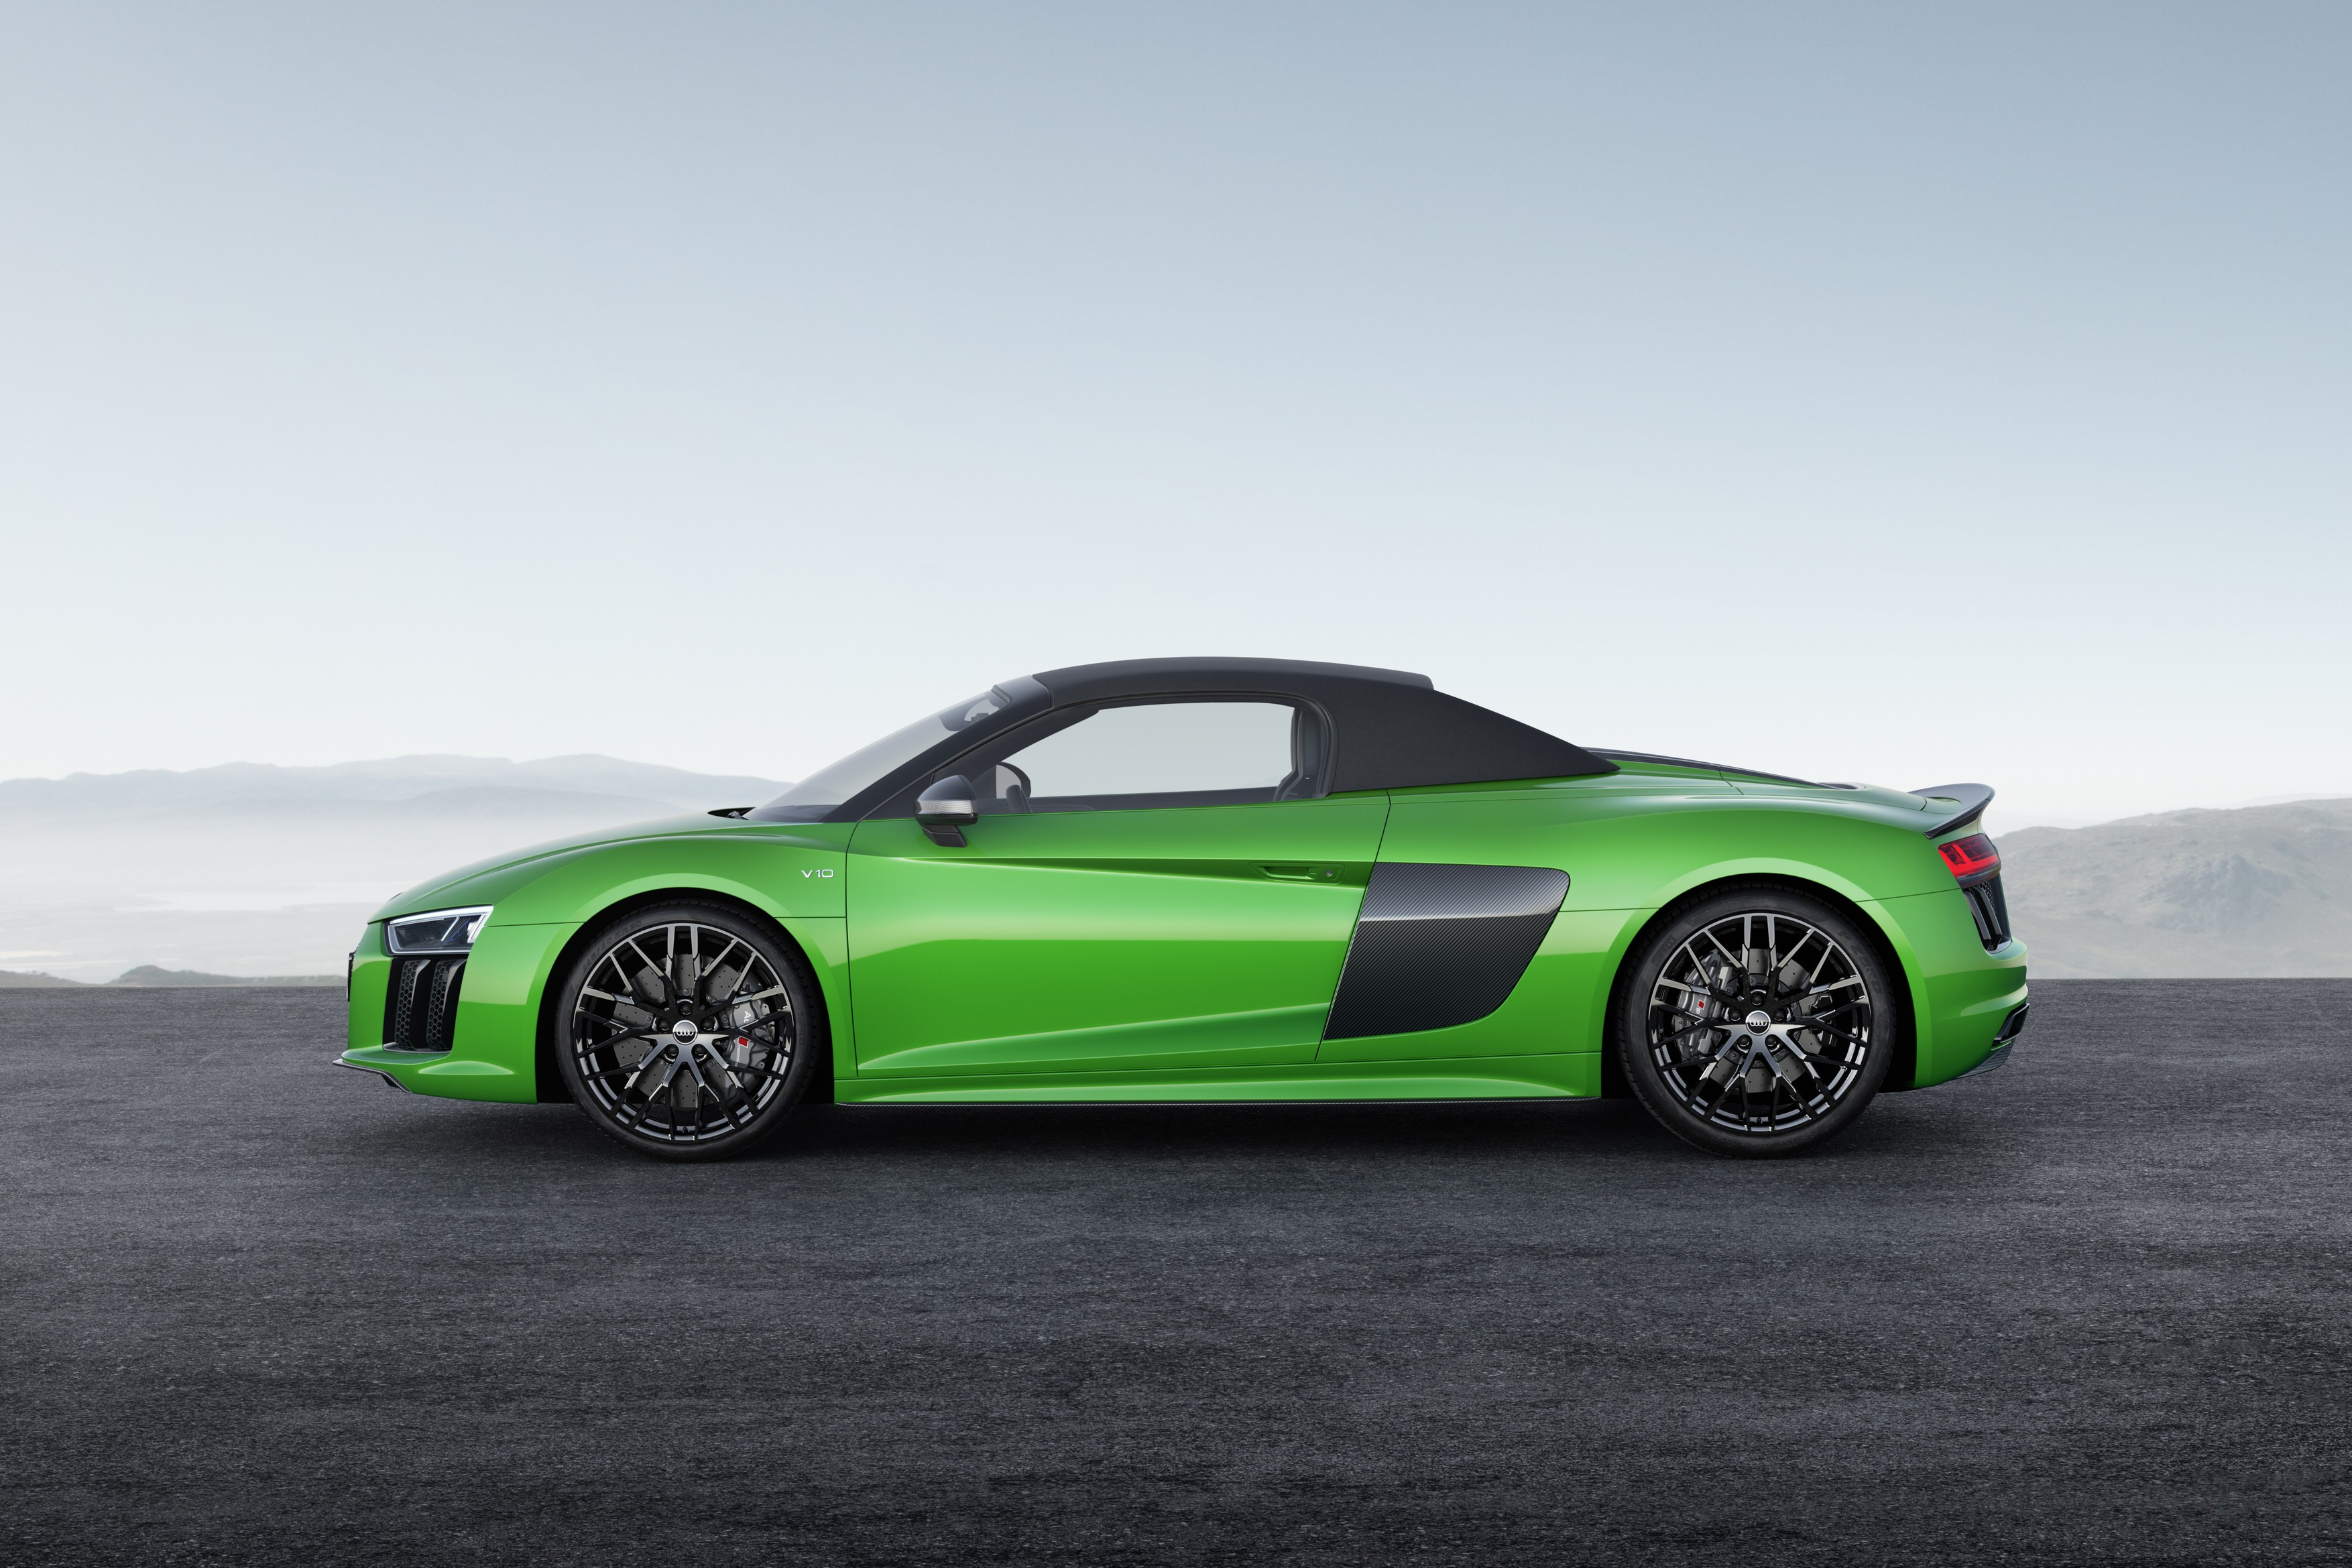 The Audi R8 Coupe V10 plus